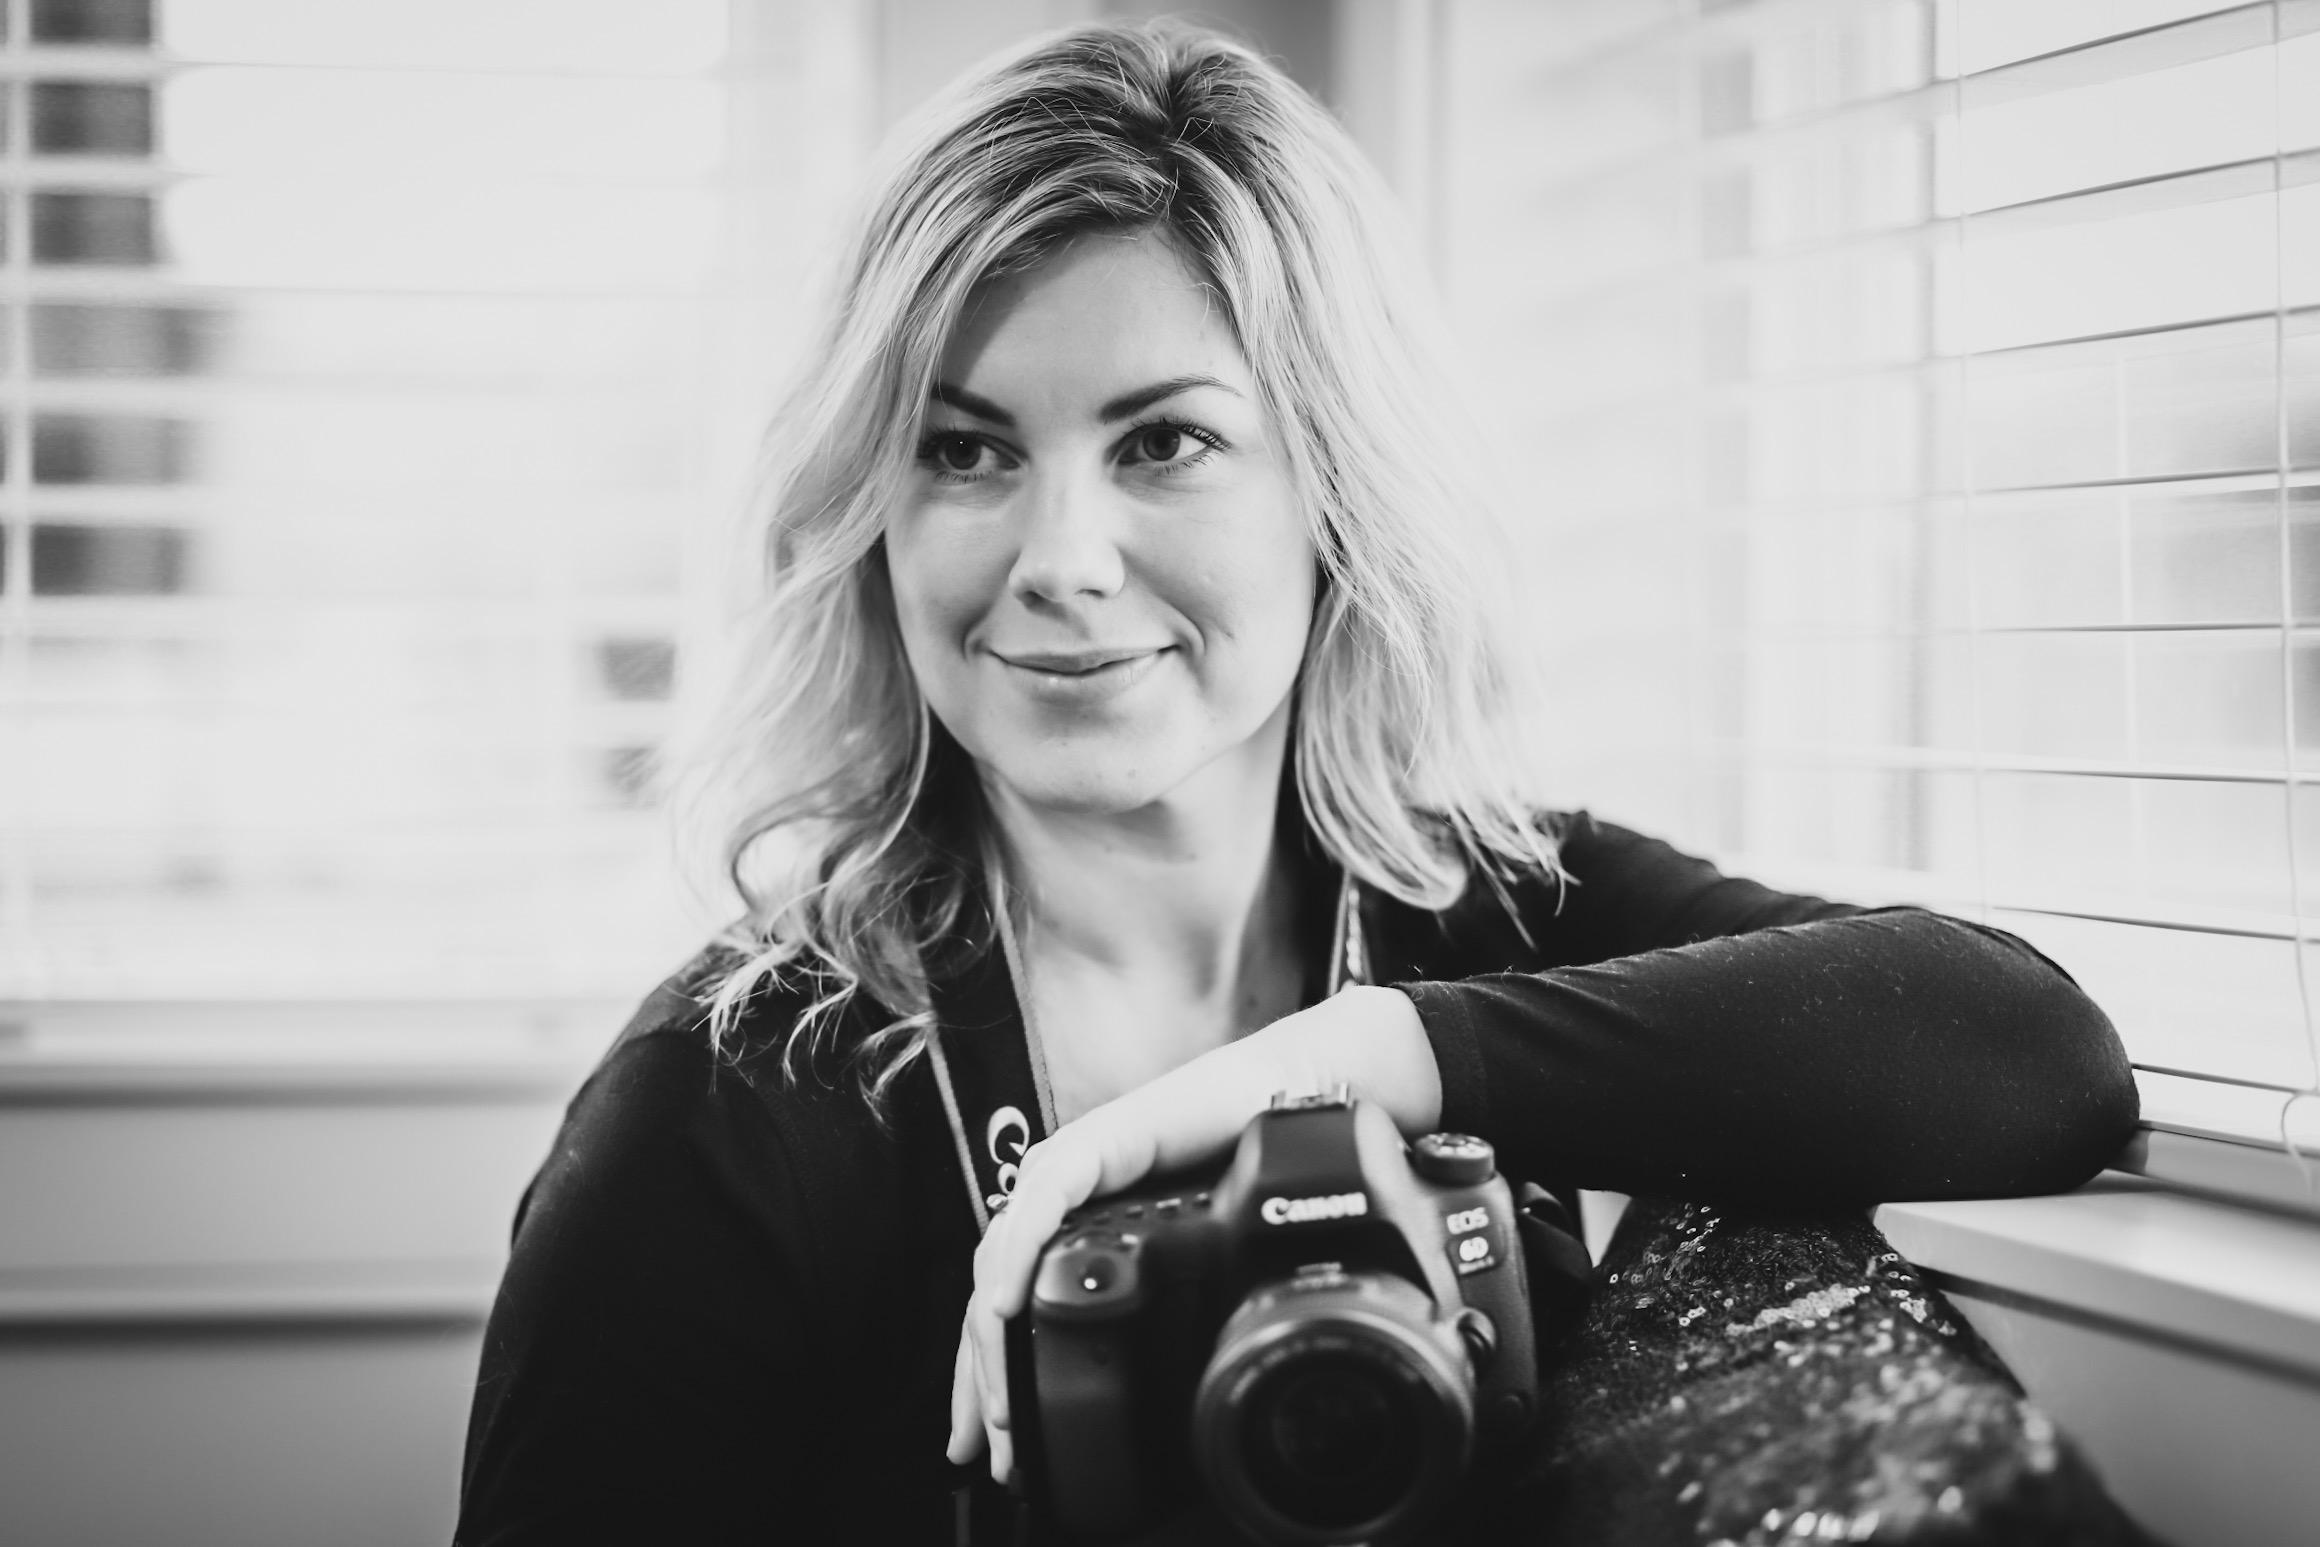 Black and white portrait of a Shannon Kay, a blonde woman photographer holding a Canon camera.